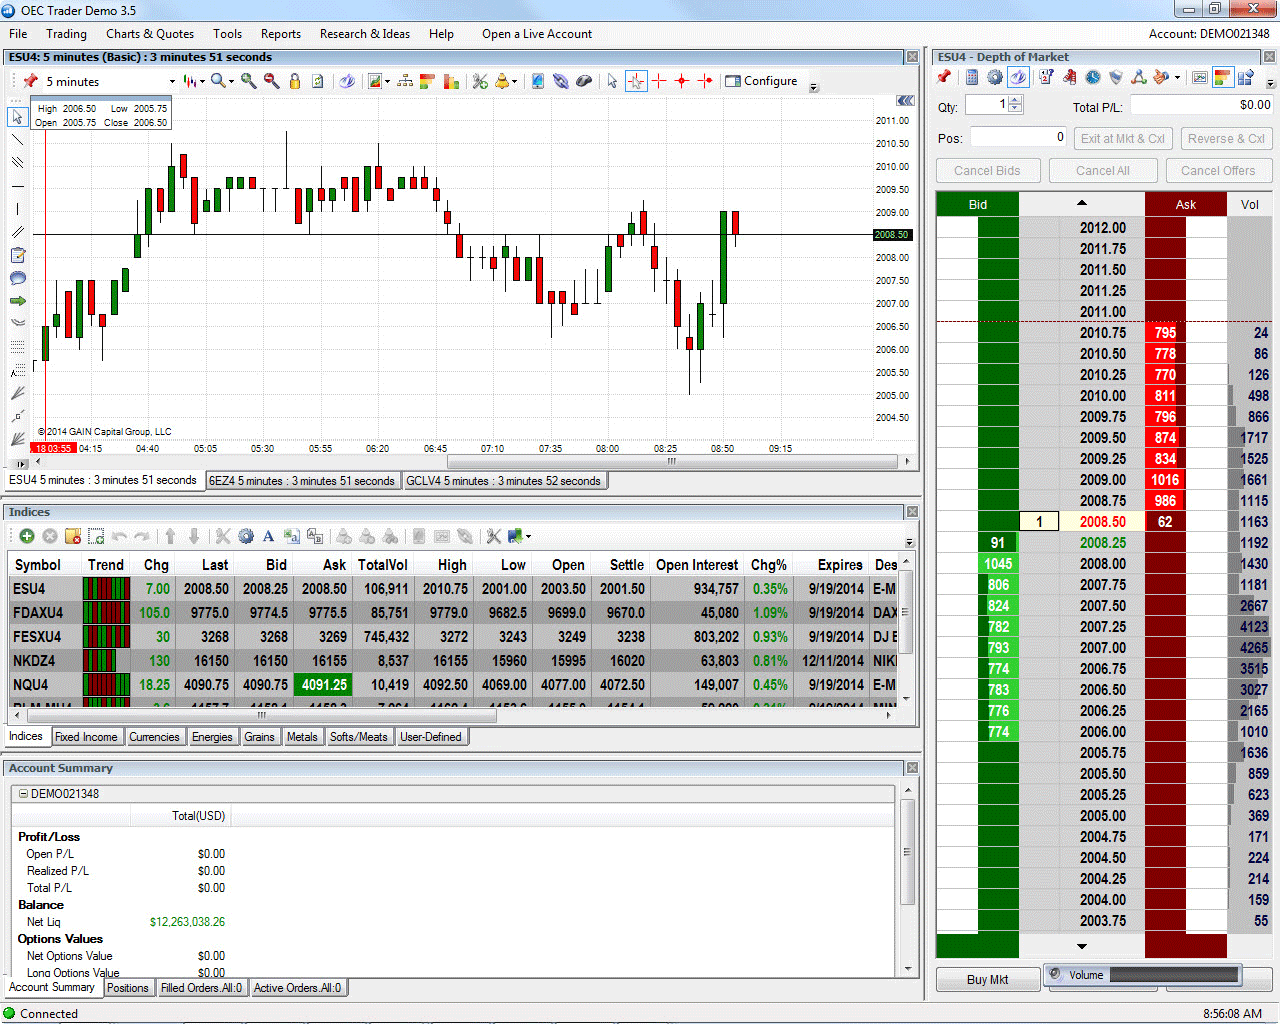 Direct access trading software for brokerage